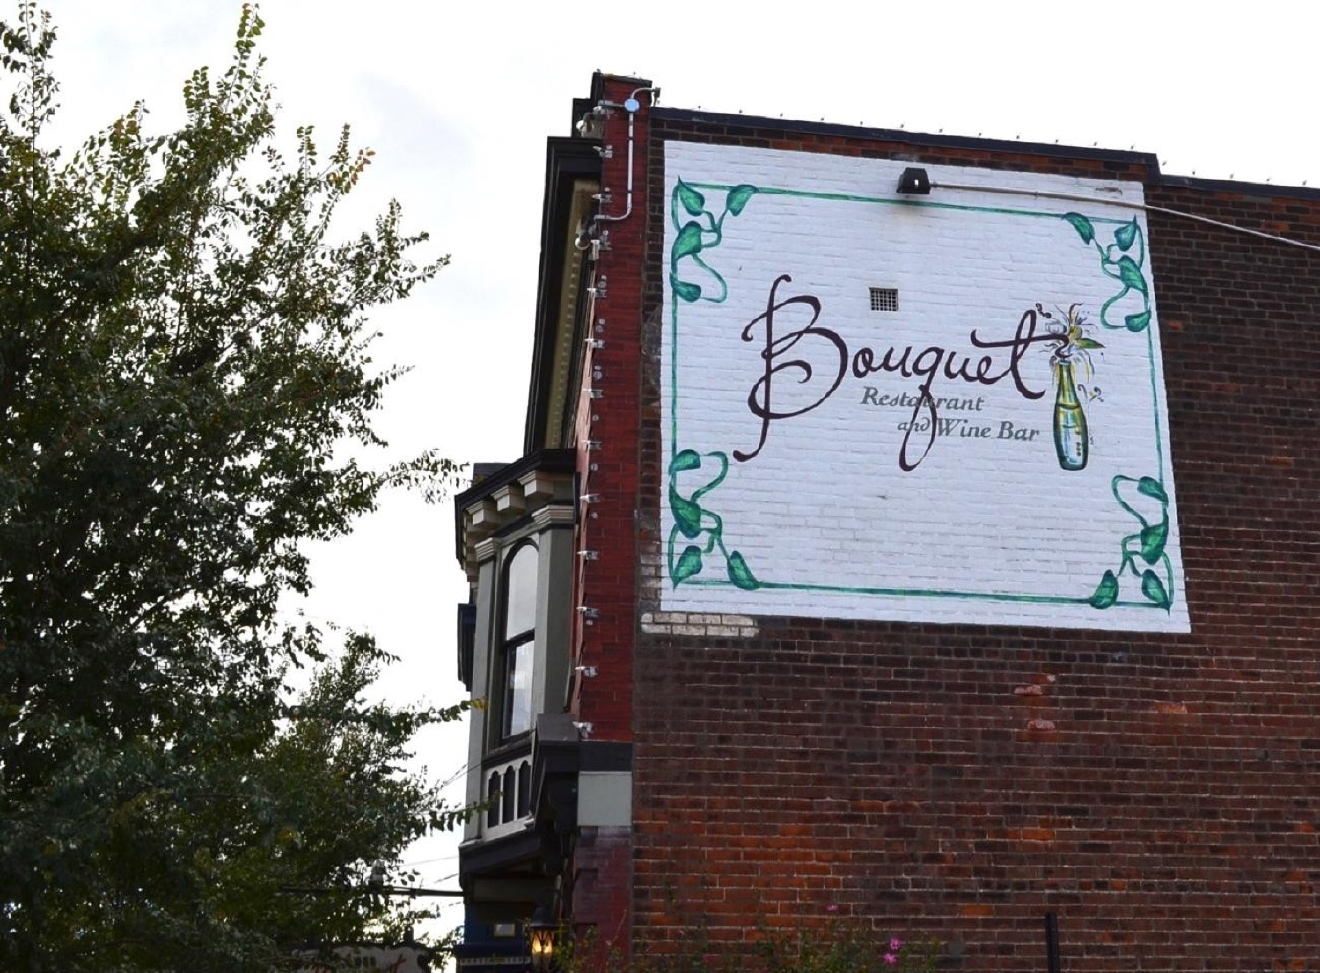 Bouquet: a chic-but-casual bistro with elevated-but-affordable American fare. ADDRESS: 519 Main Street / Image: Leah Zipperstein, Cincinnati Refined // Published: 1.6.17